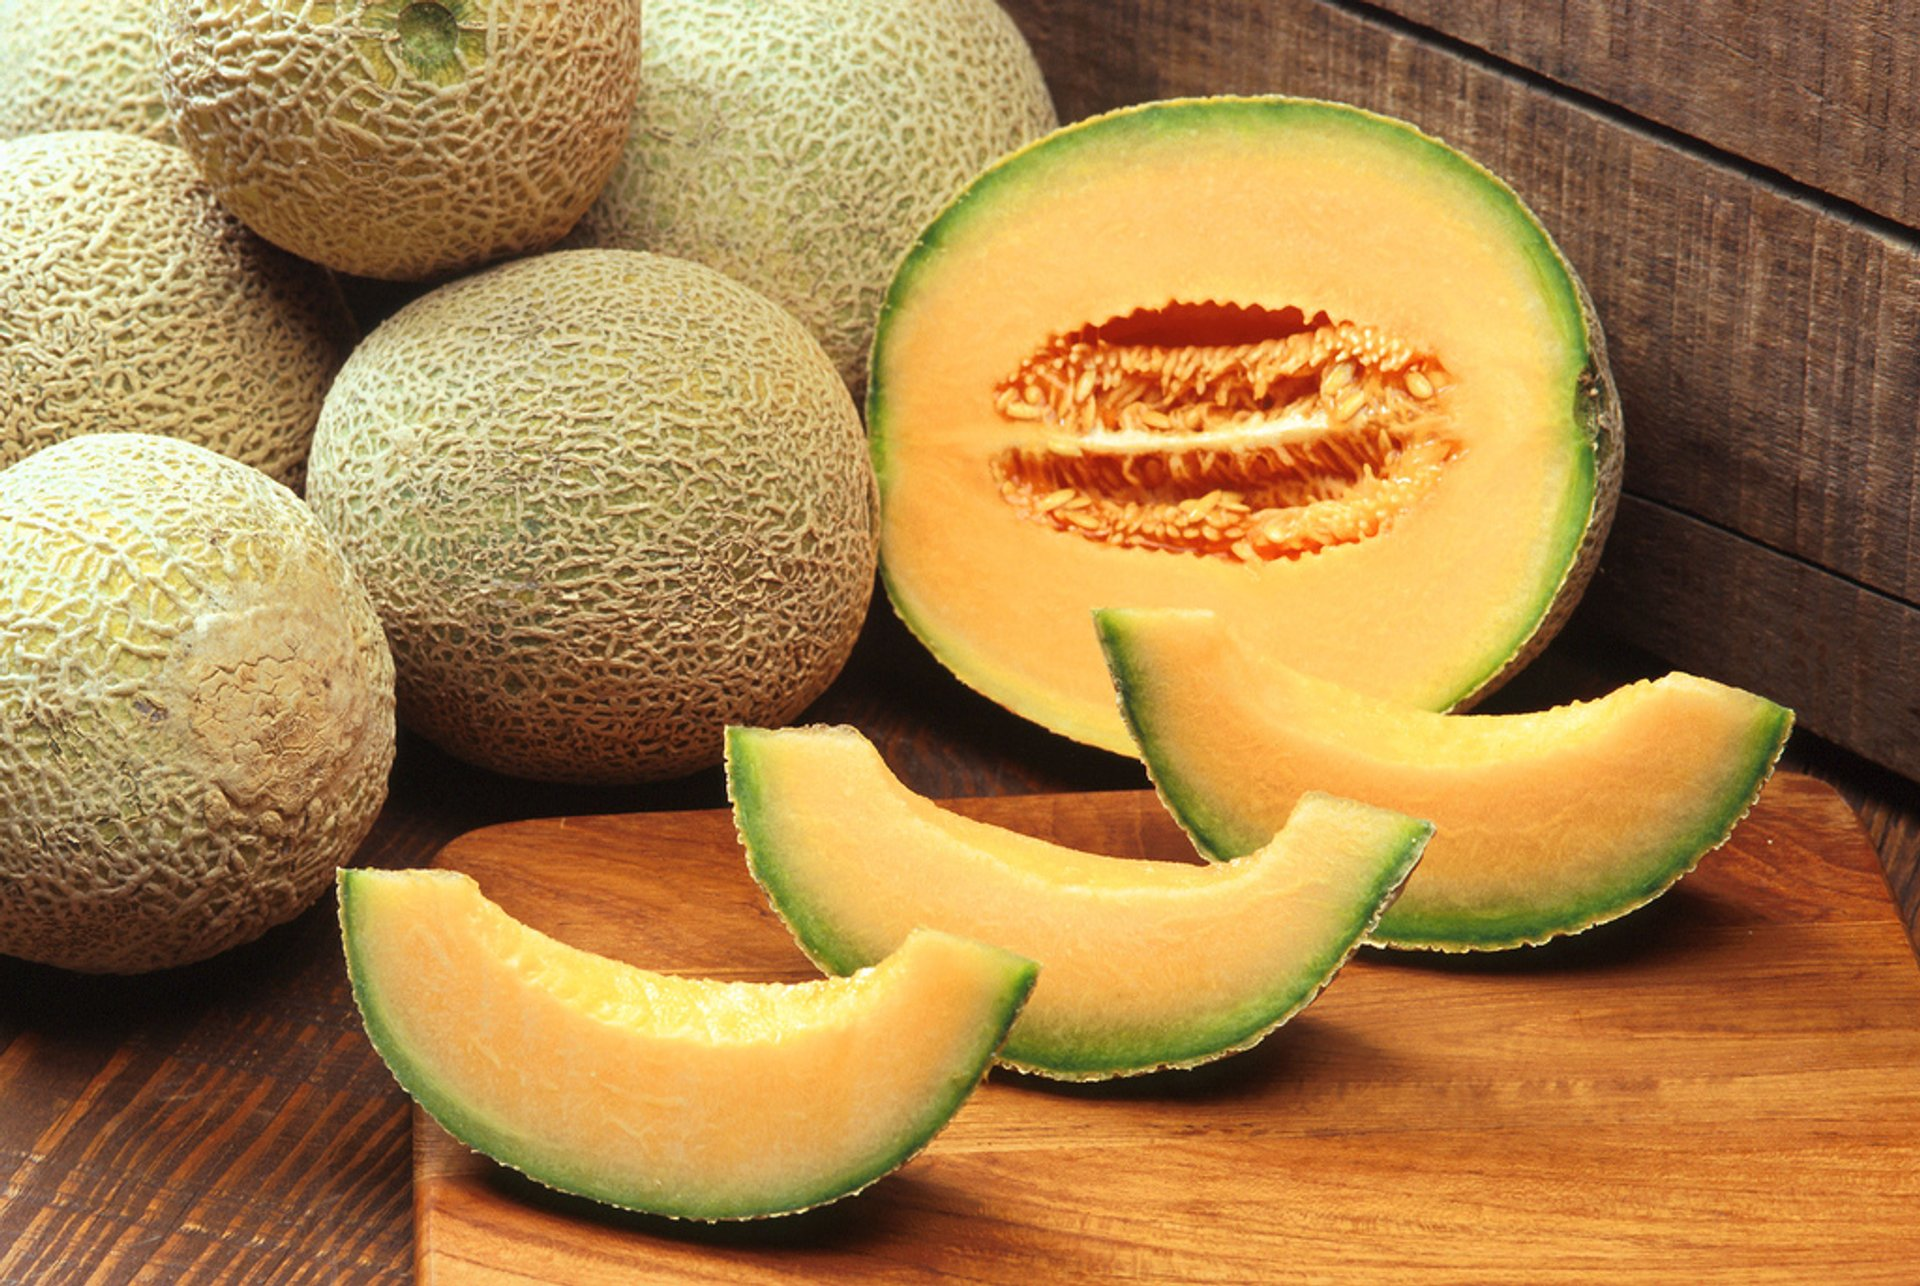 Cantaloupe in Costa Rica 2019 - Best Time